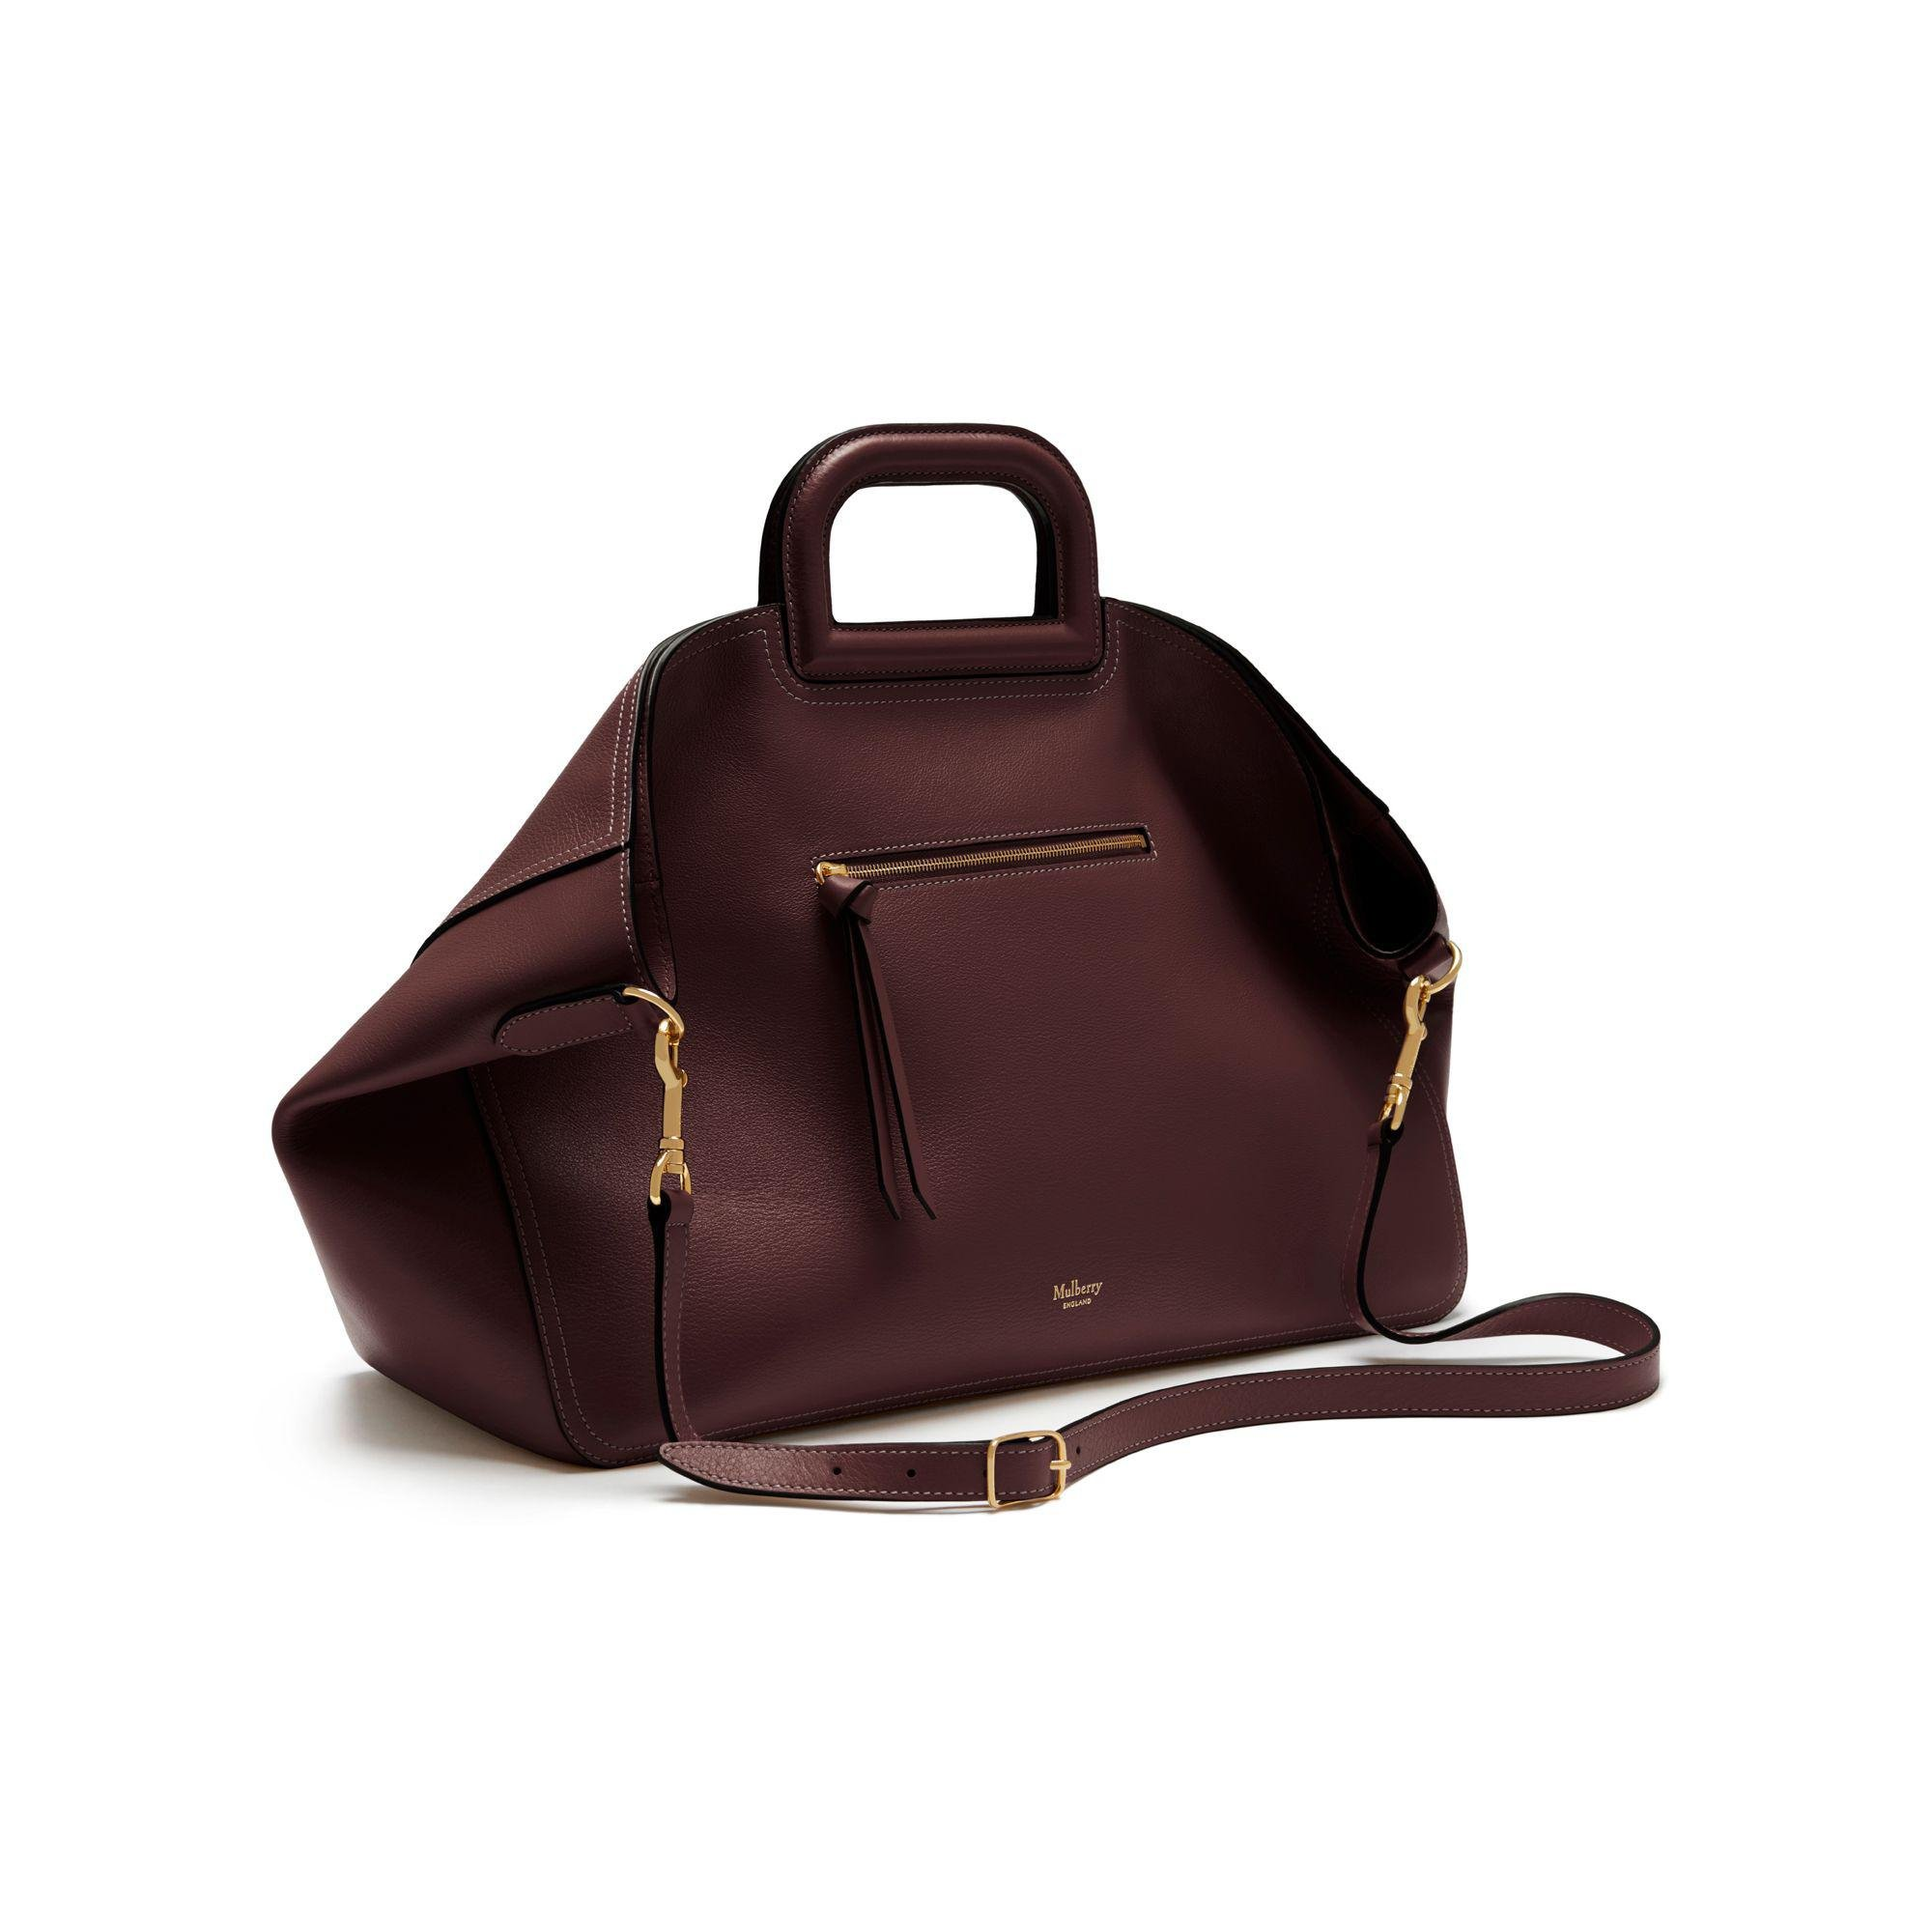 e33567b4167cc ... germany mulberry medium clipper bag lyst lyst mulberry brimley tote  20799 35234